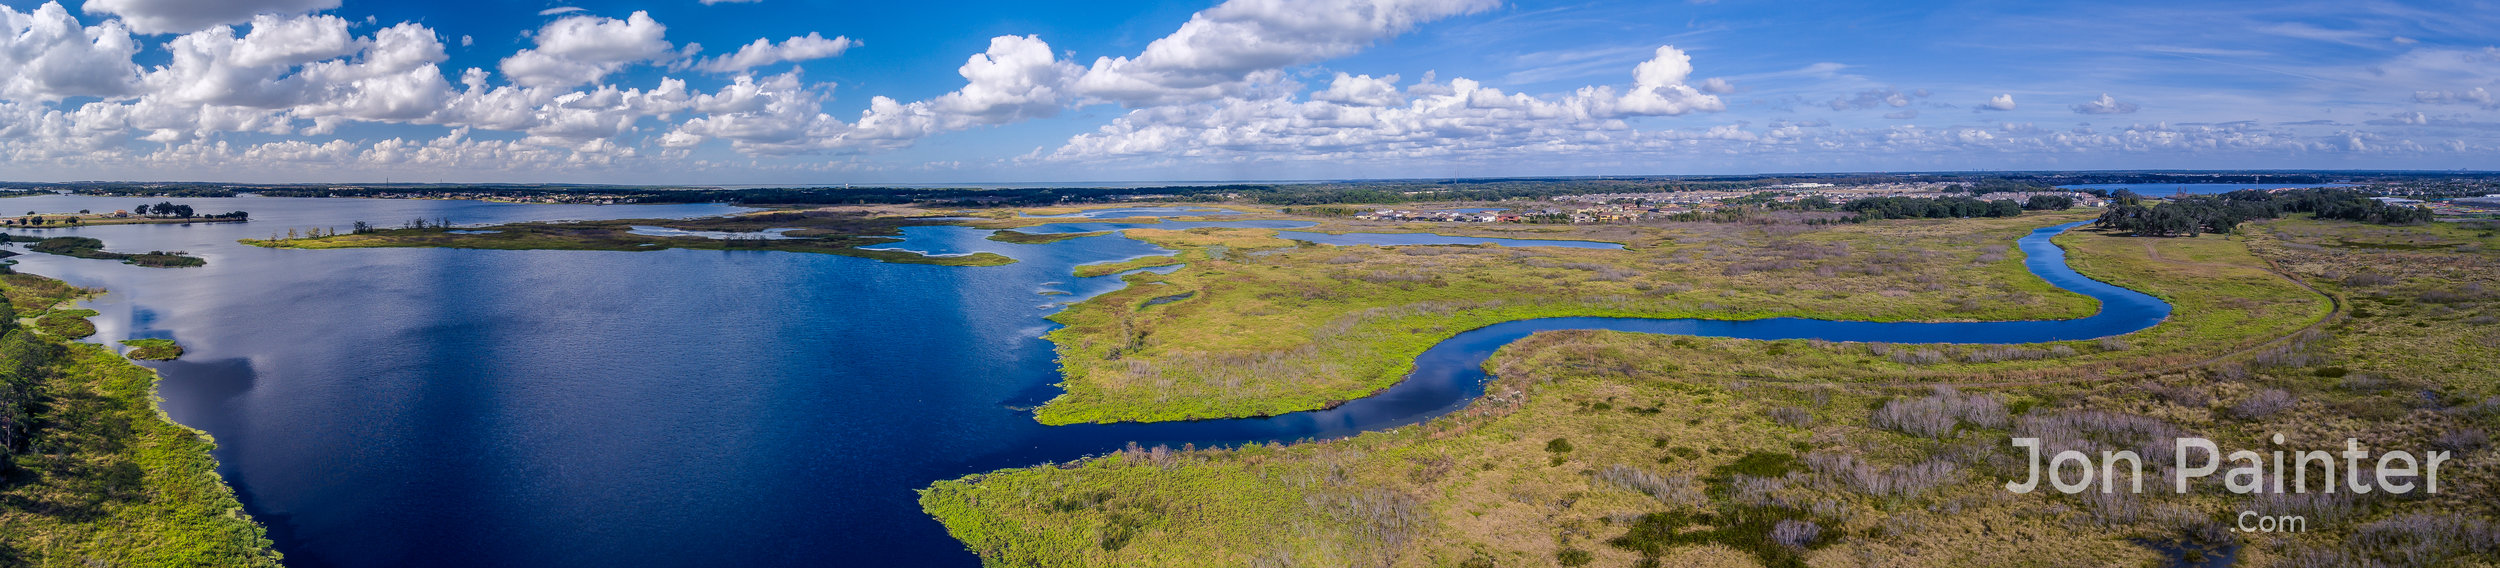 A panorama of Florida waterways from a drone